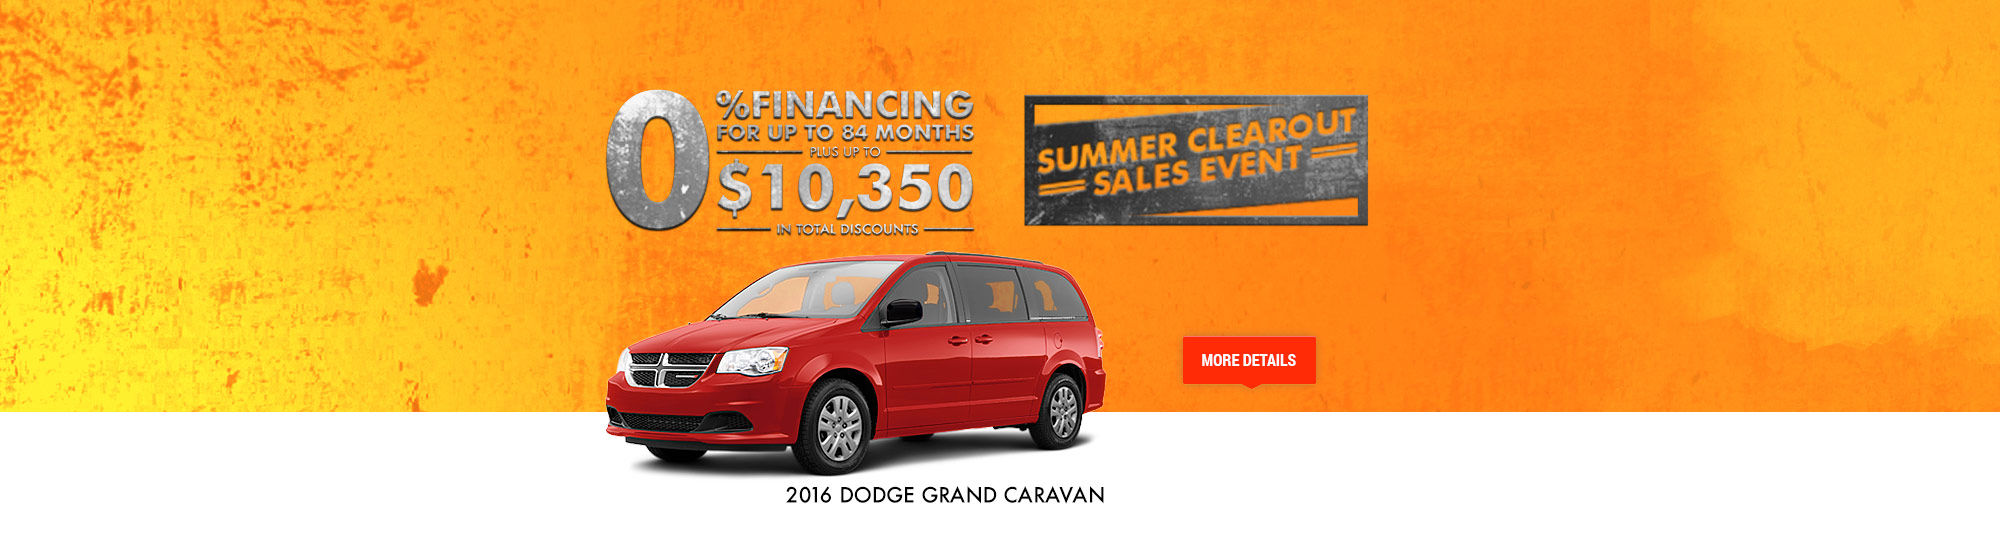 Summer Clearout Sales Event